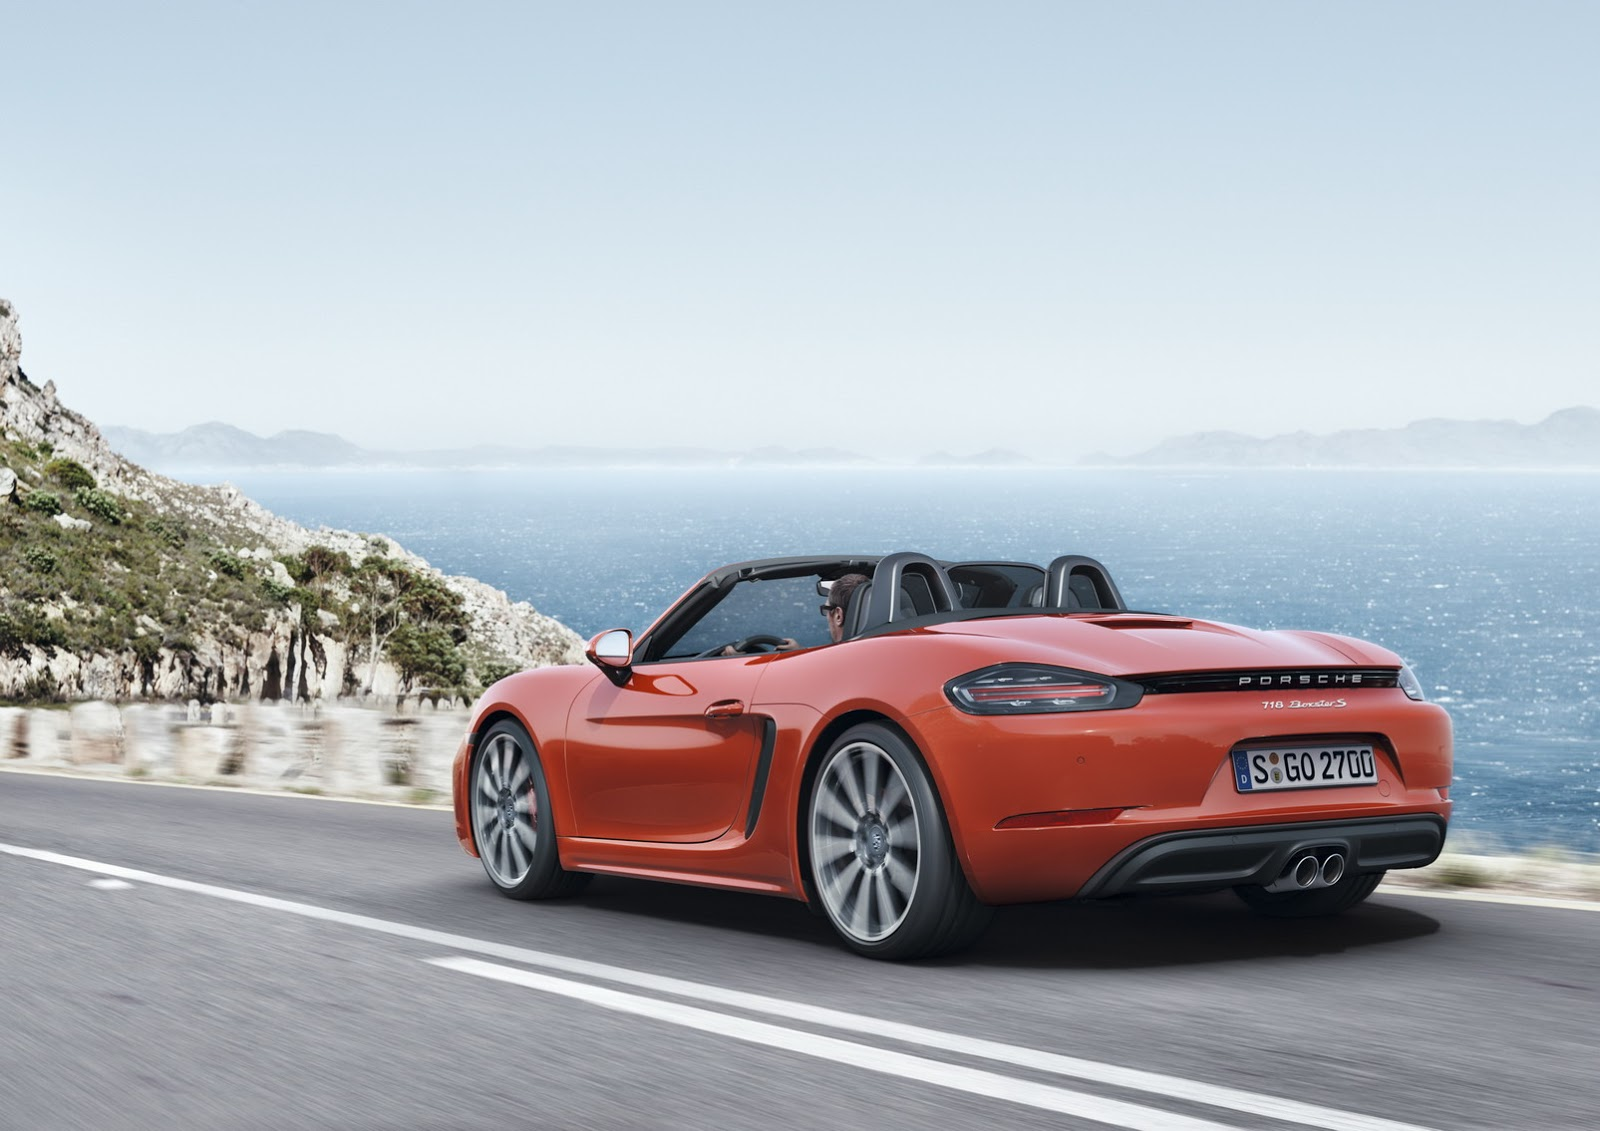 porsche 718 boxster revealed with new turbo d 4 cylinder engines w video carscoops